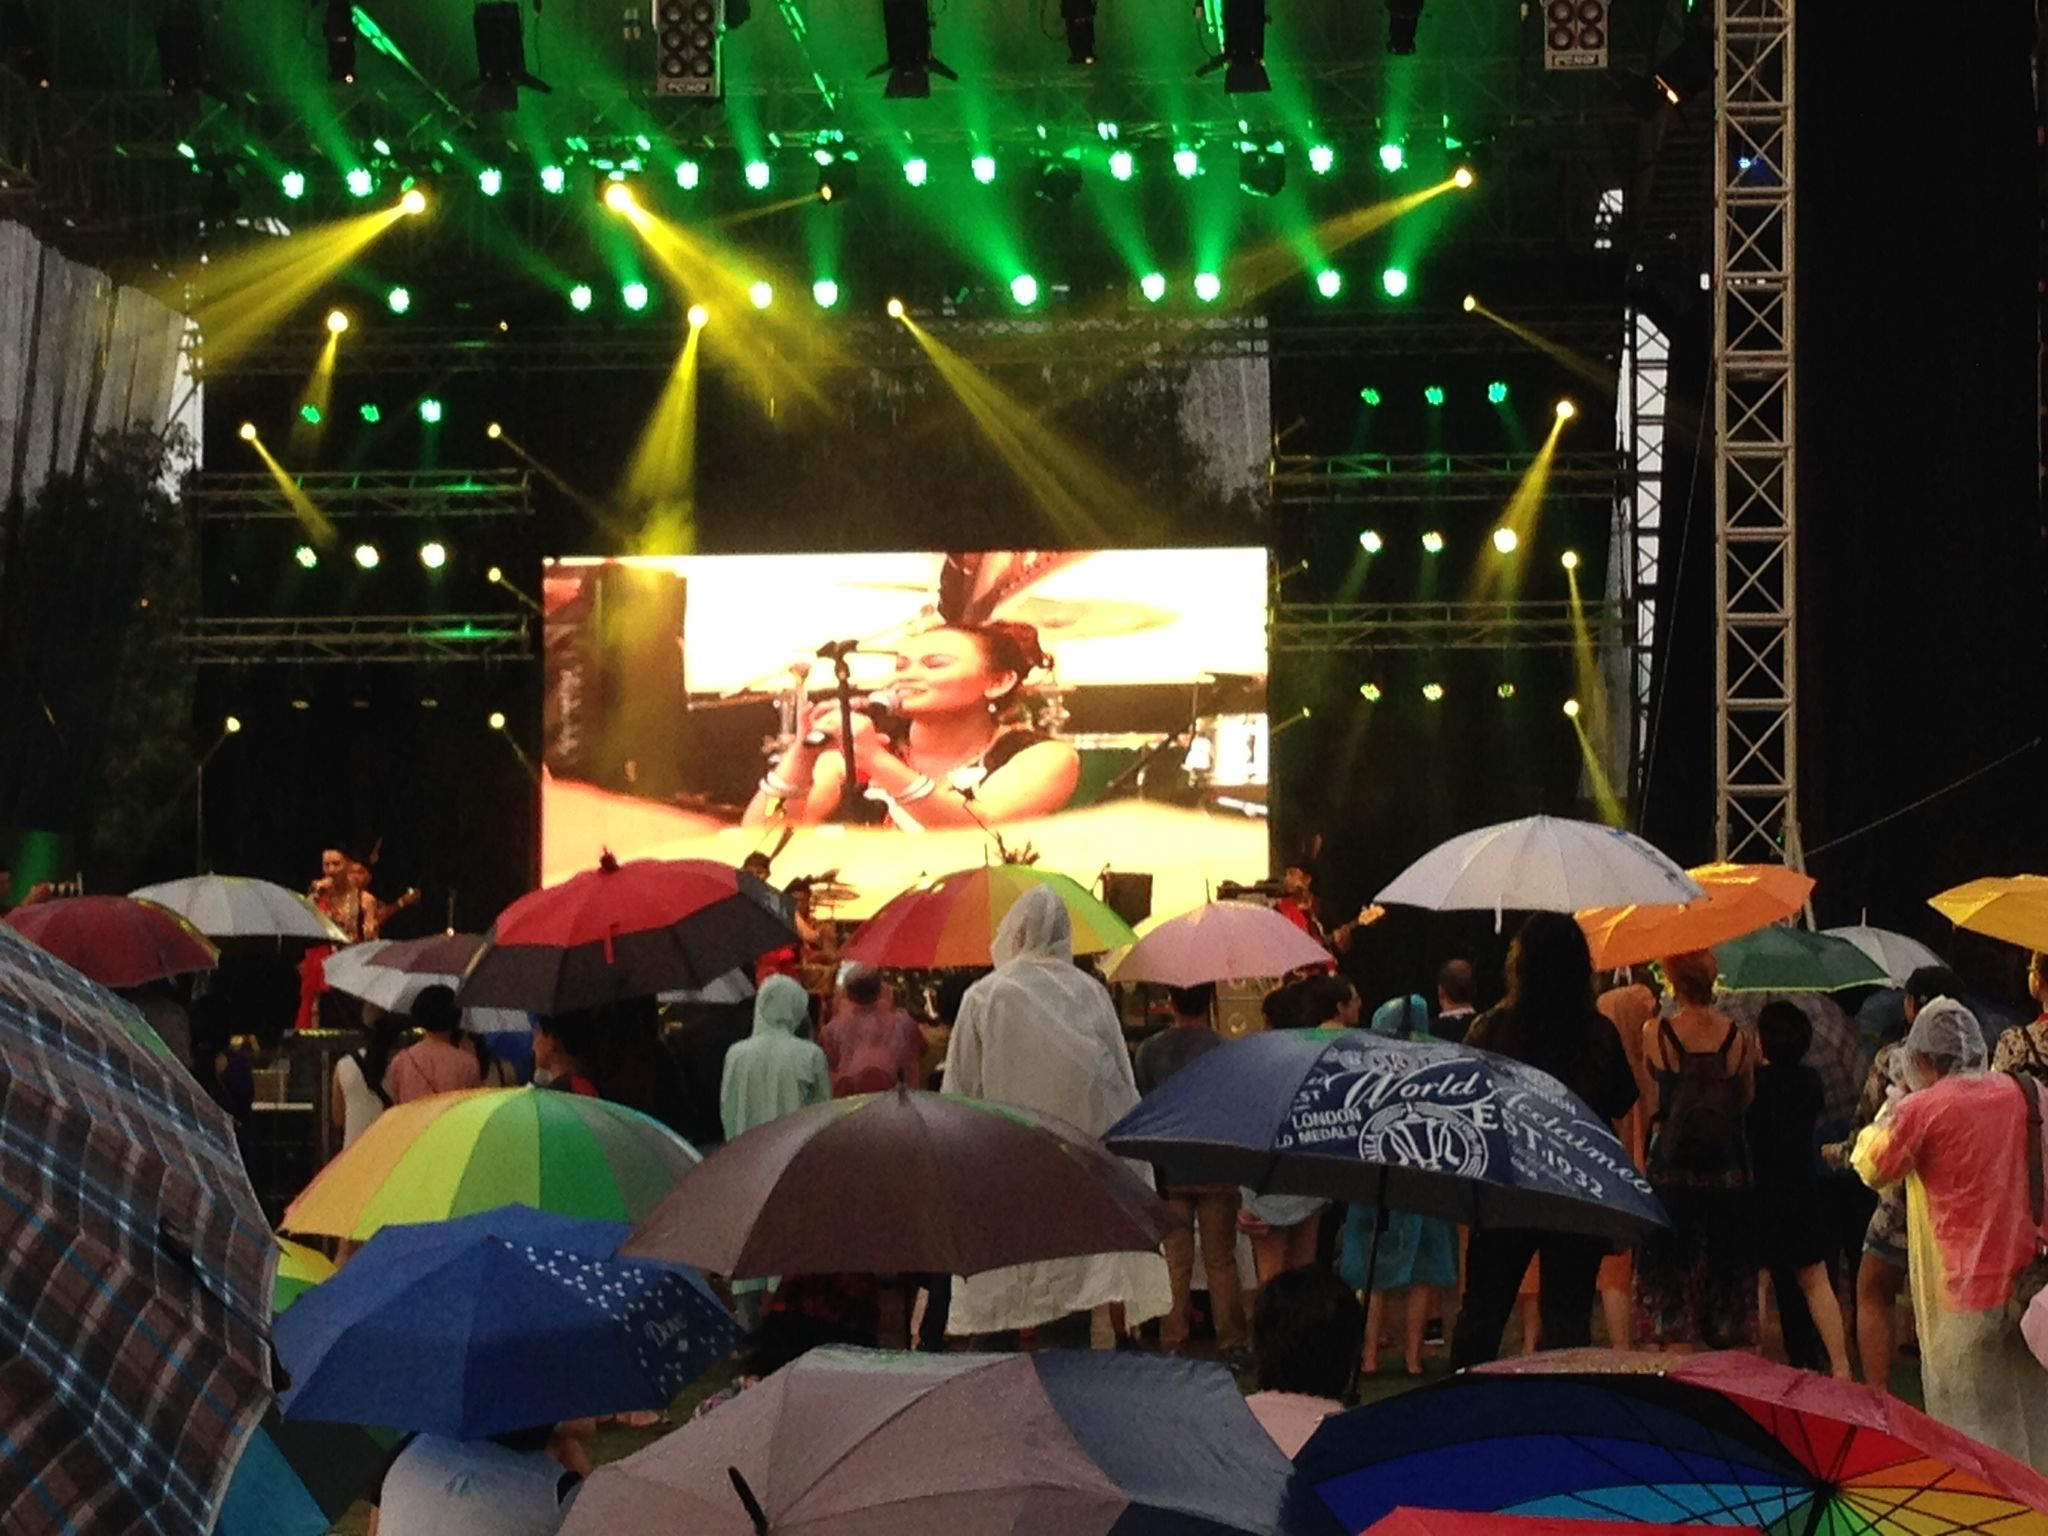 Evening in Penang. The Penang World Music Festival was fabulous - even if the weather wasn't quite what I had imagined.